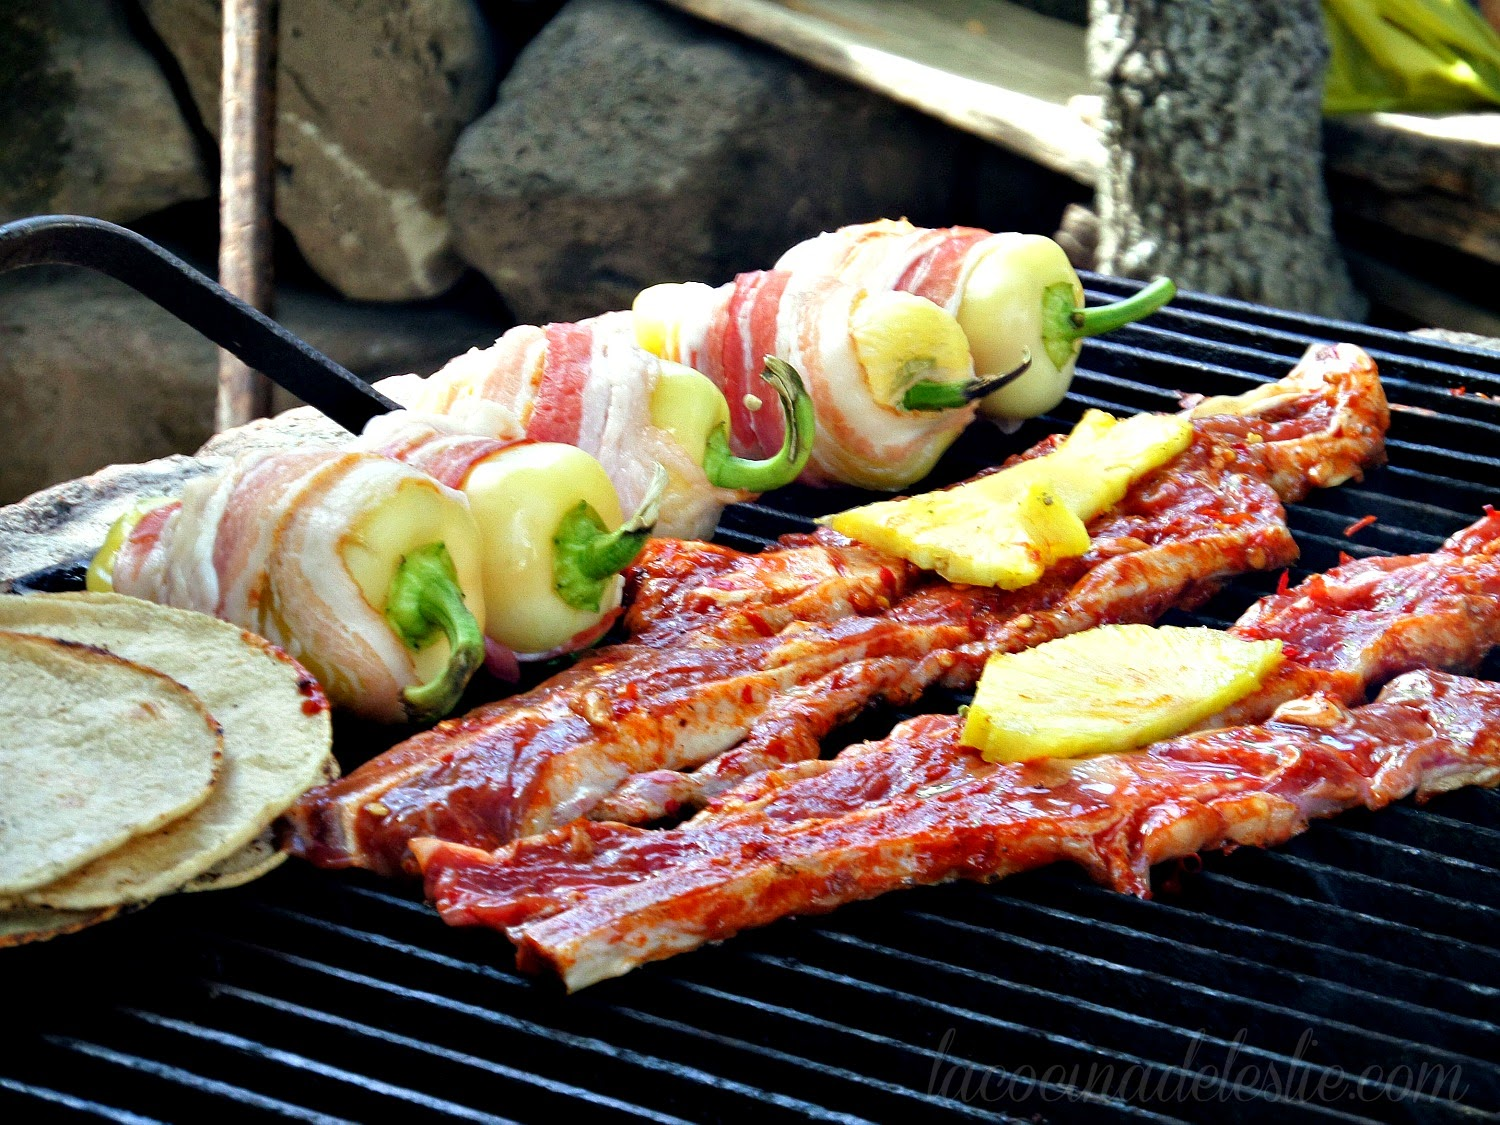 Grilled Pineapple Steaks w/ Adobo & Bacon Wrapped Peppers - lacocinadeleslie.com